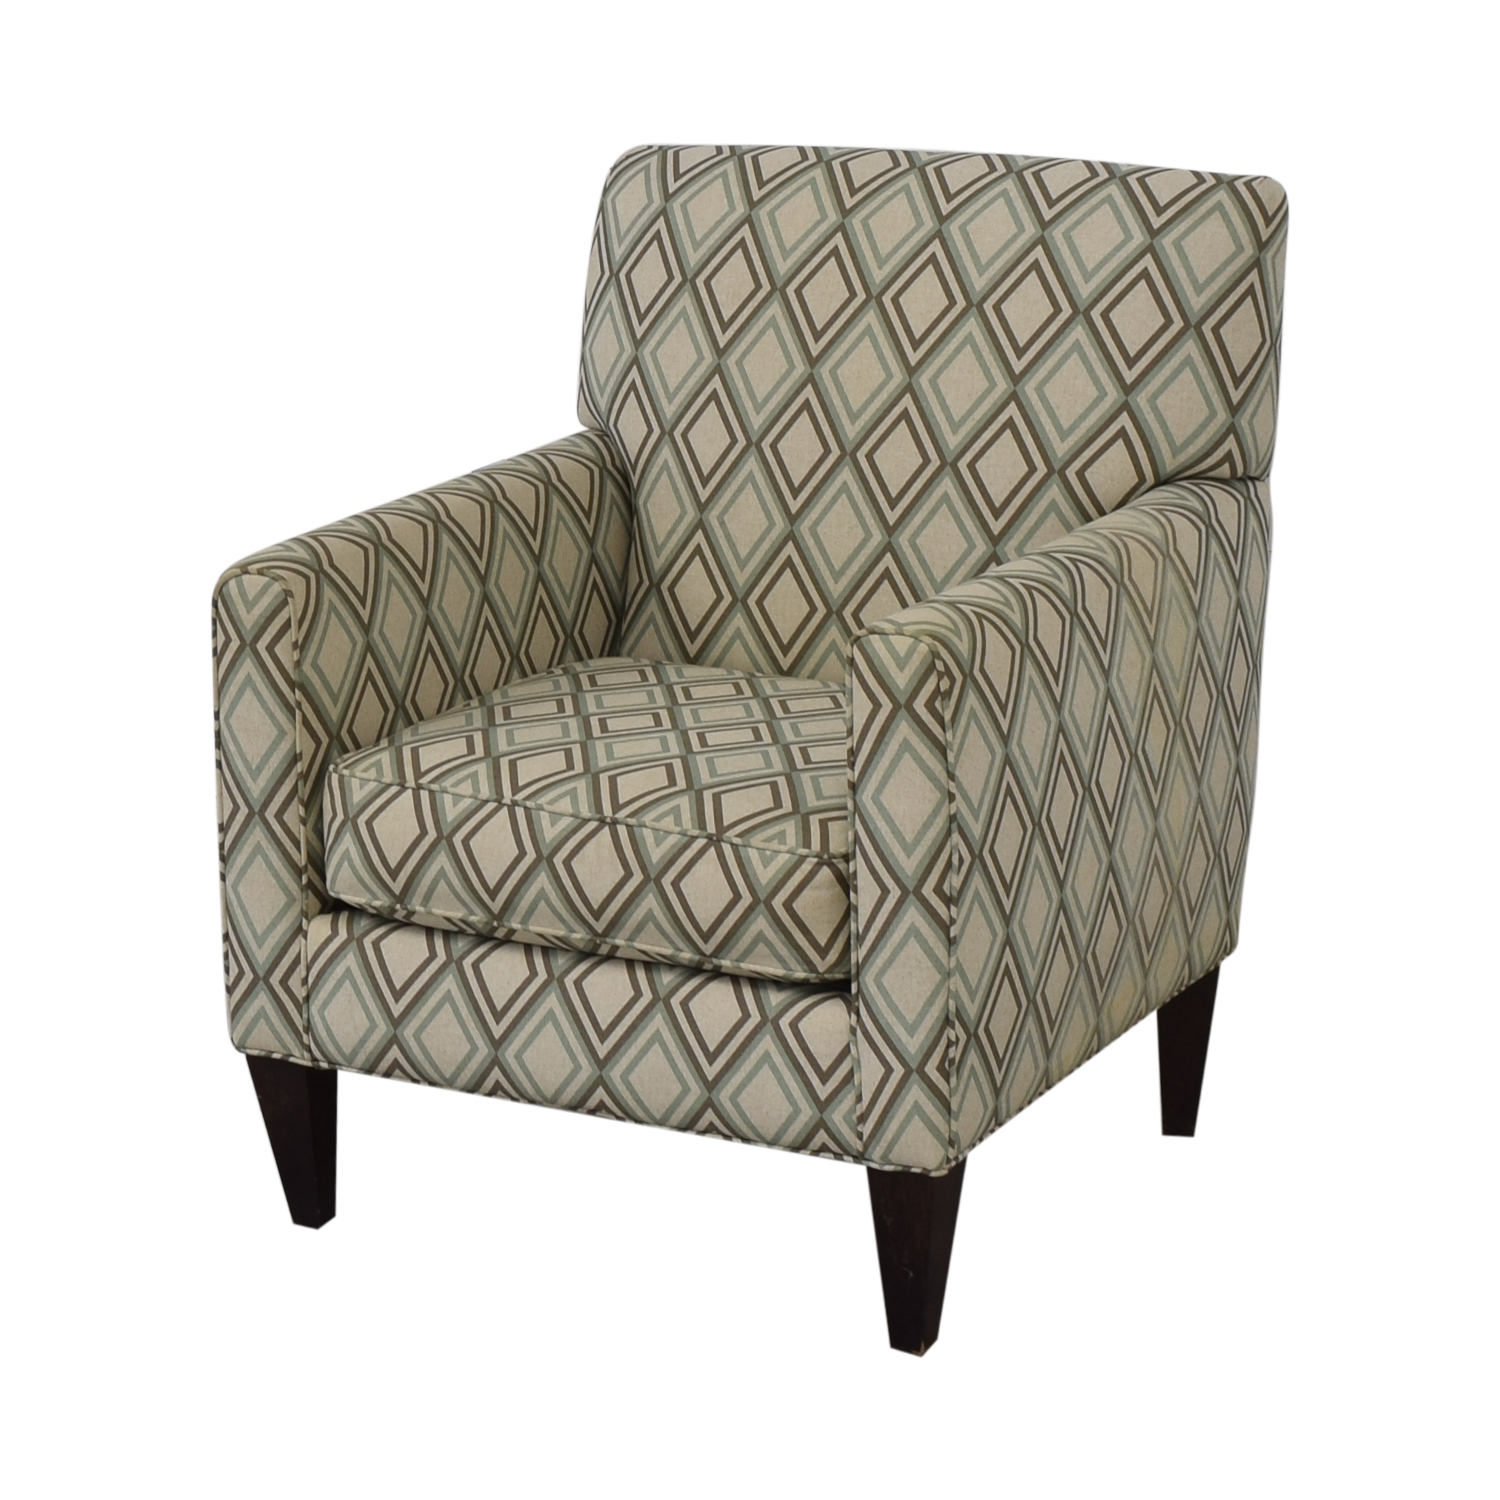 Rowe Furniture Patterned Geometric Armchair / Accent Chairs